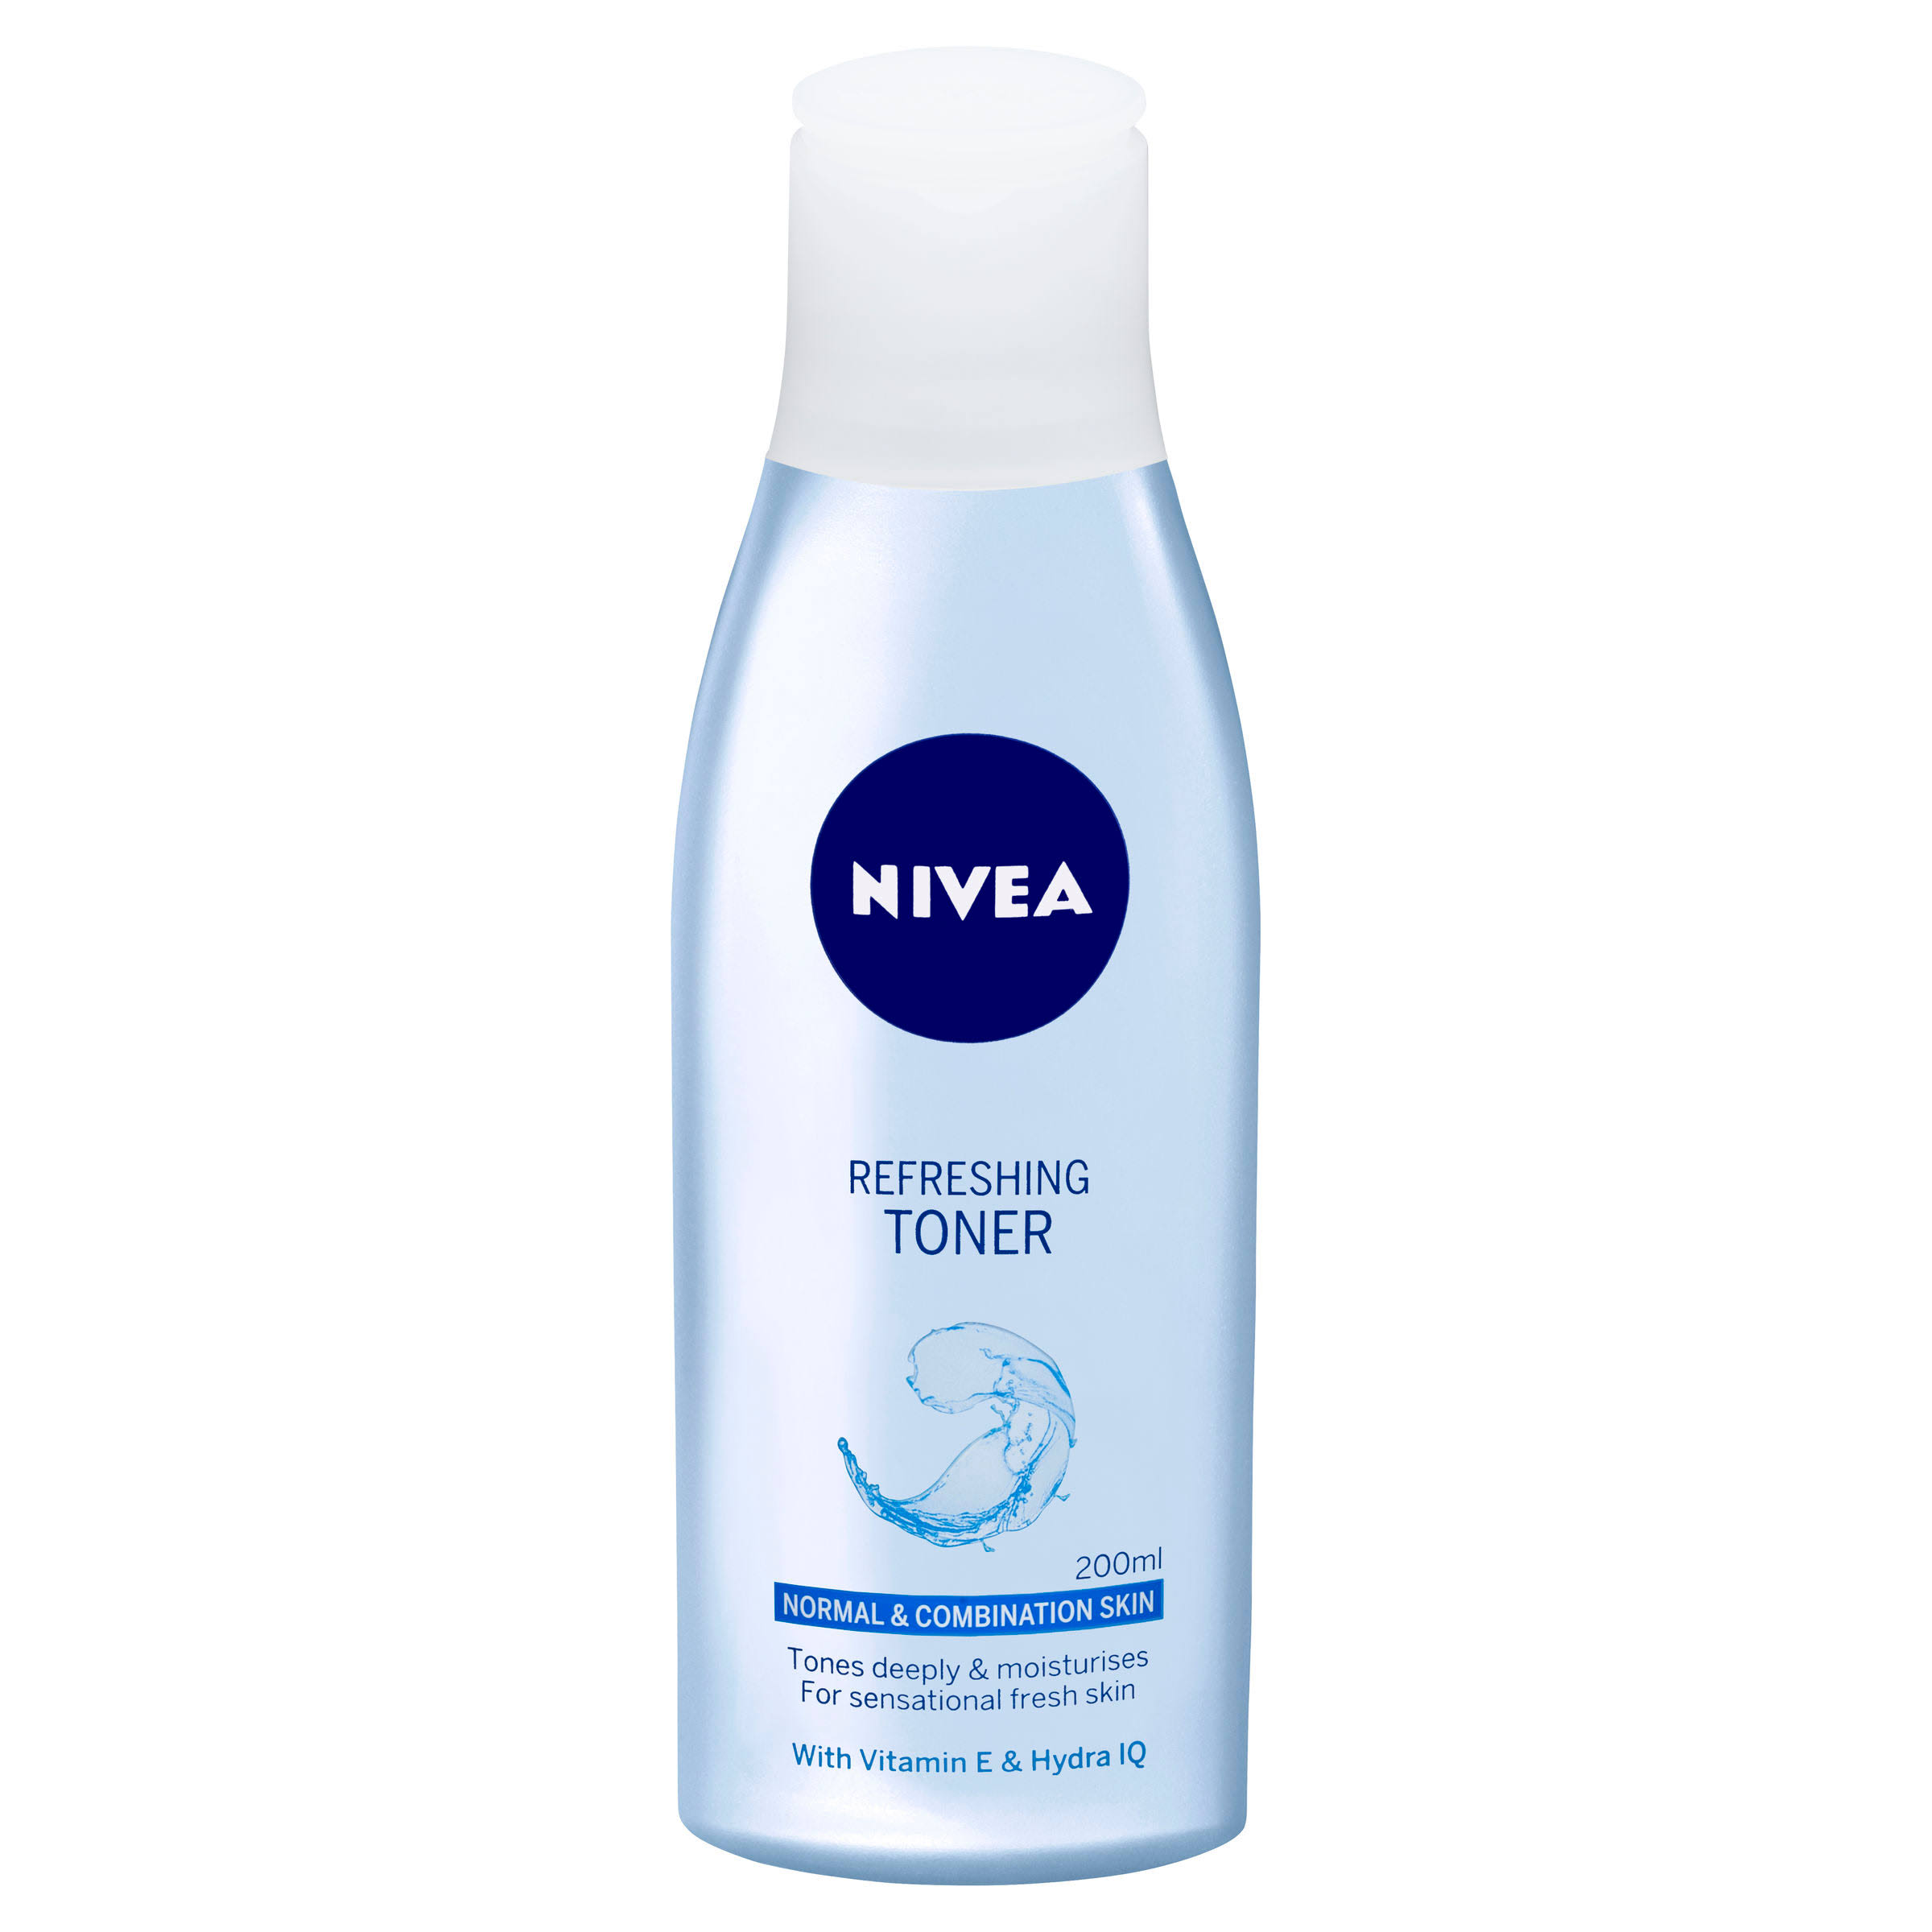 Nivea Daily Essentials Refreshing Toner - 200ml